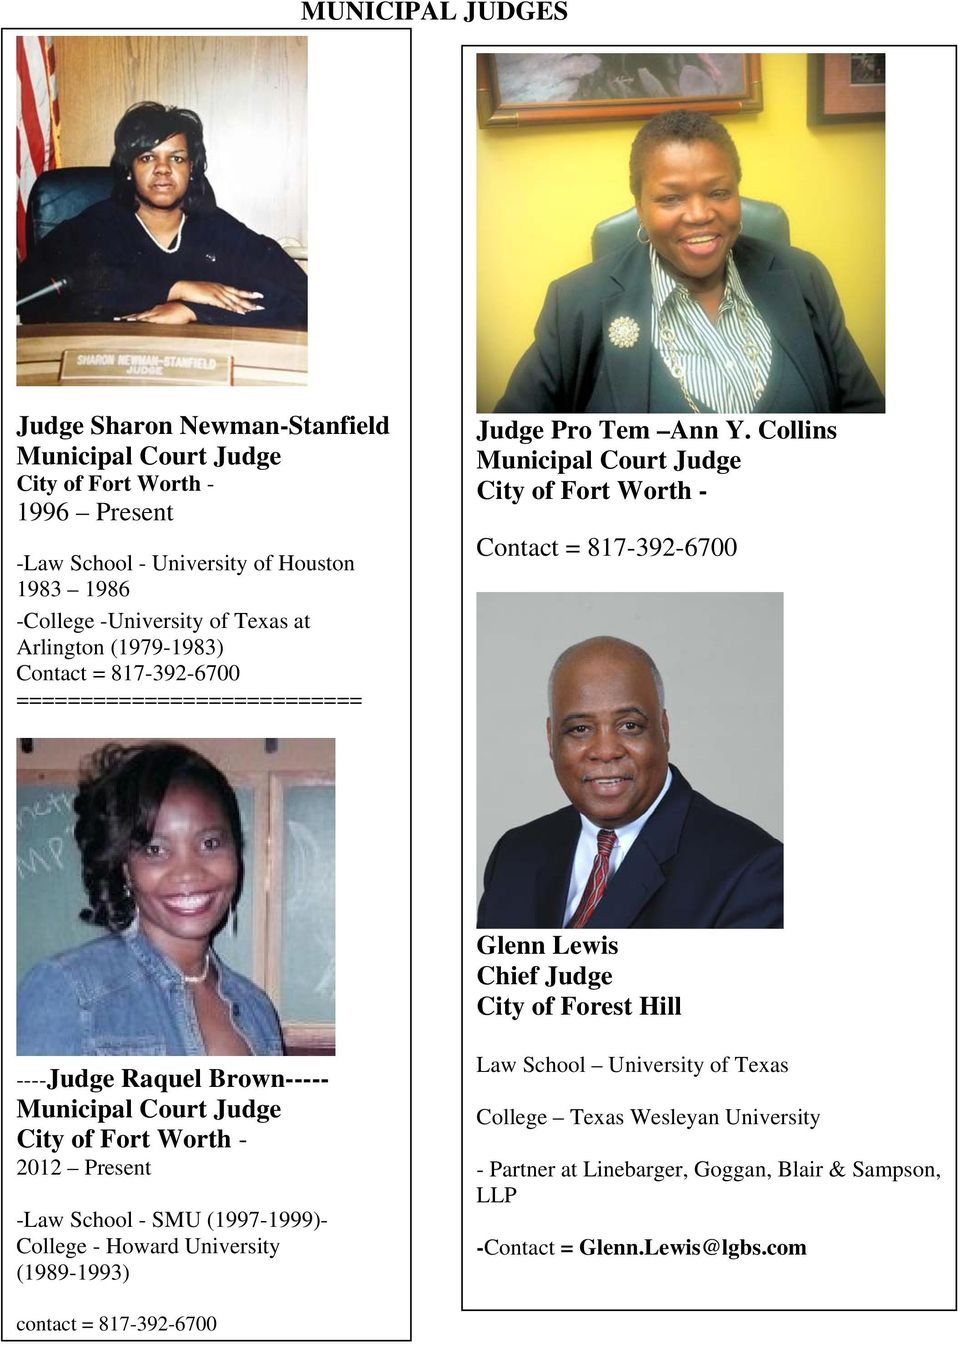 Collins Municipal Court Judge City of Fort Worth - Contact = 817-392-6700 Glenn Lewis Chief Judge City of Forest Hill ----Judge Raquel Brown----- Municipal Court Judge City of Fort